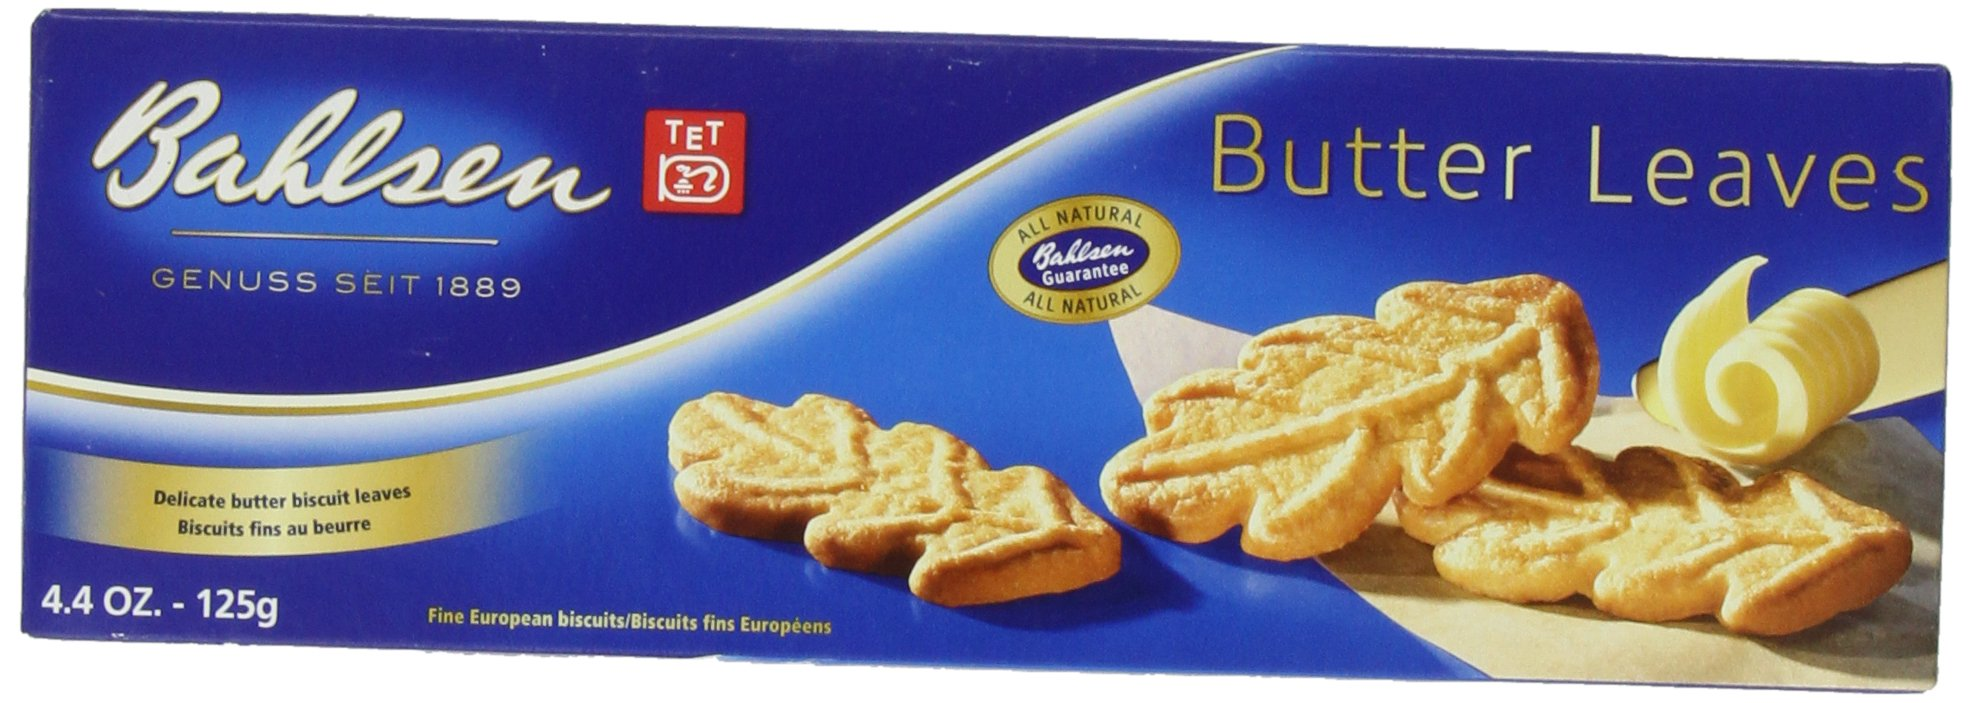 Bahlsen Butter Leaves Cookies, 4.4-Ounce Boxes (Pack of 12)